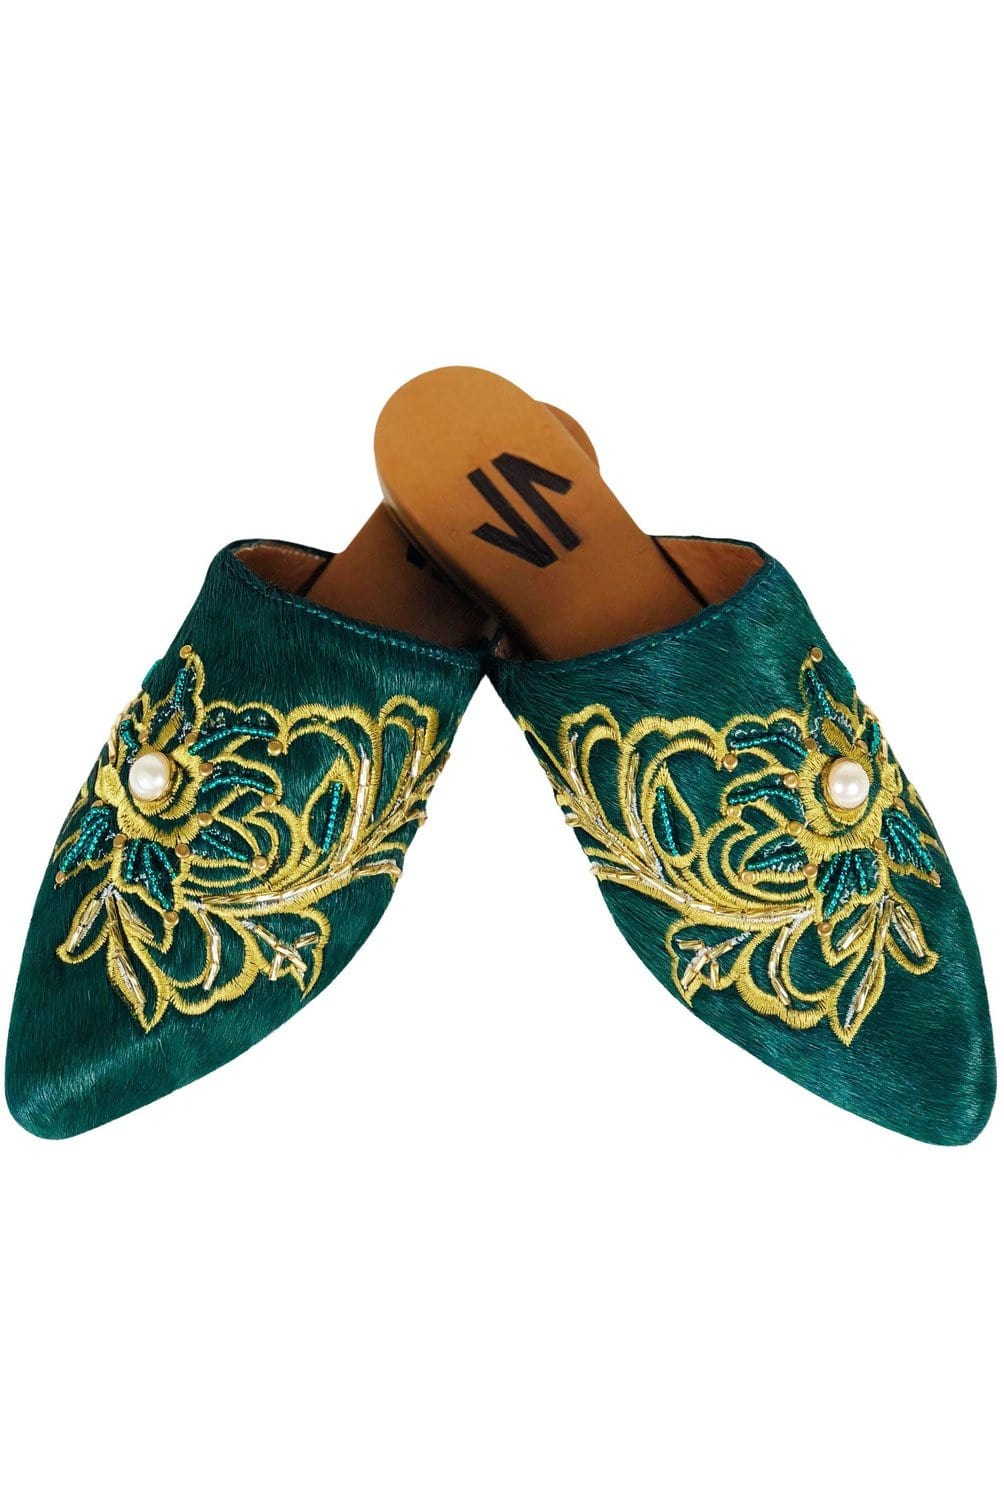 Columbian Leather Embroidered Mules in Green - Himelhoch's